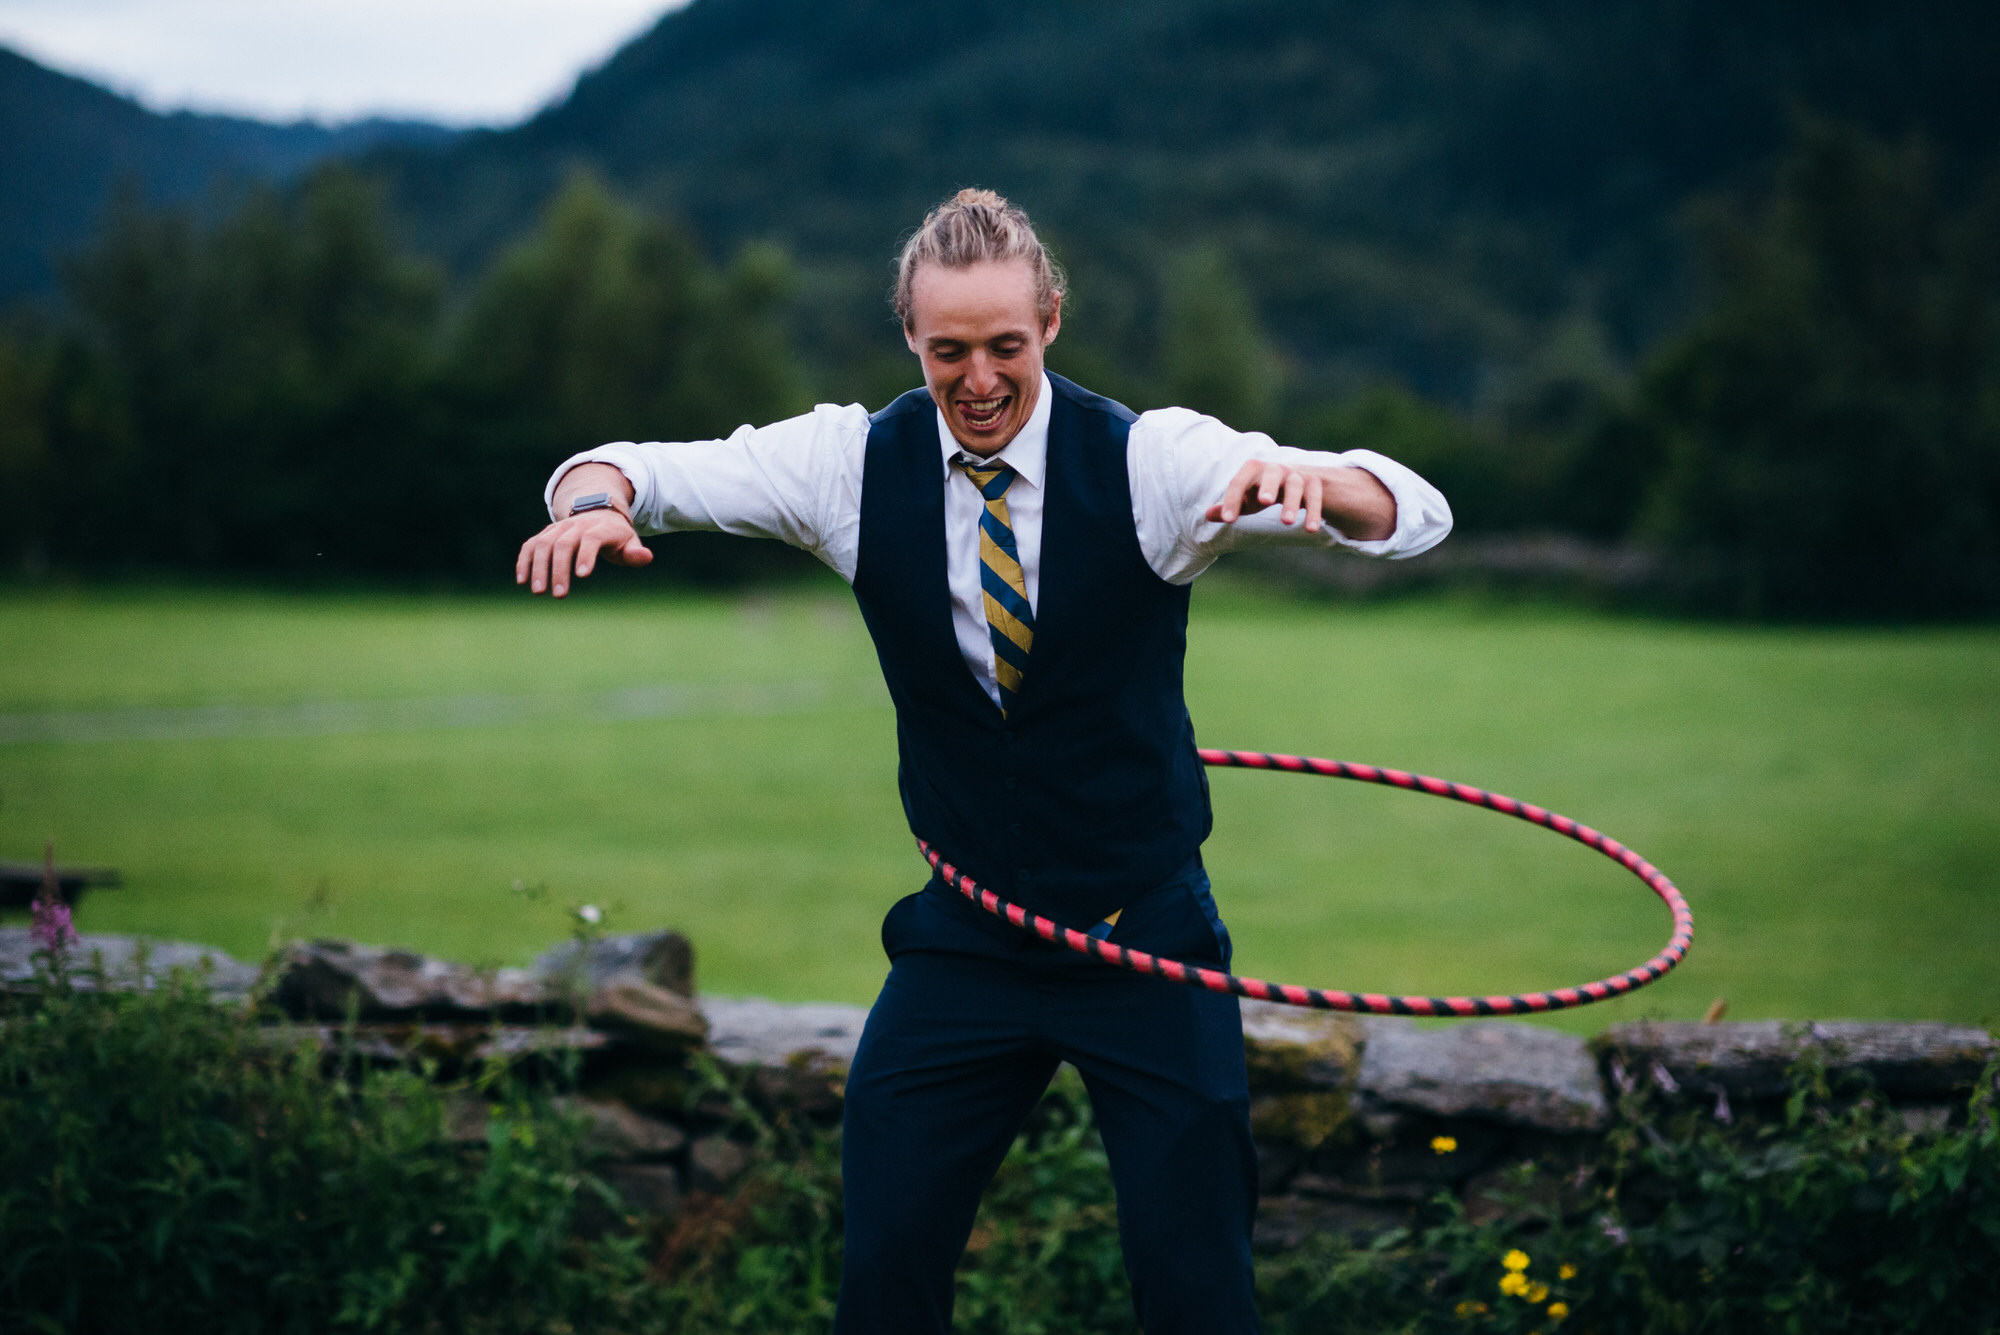 Hula hoop at wedding